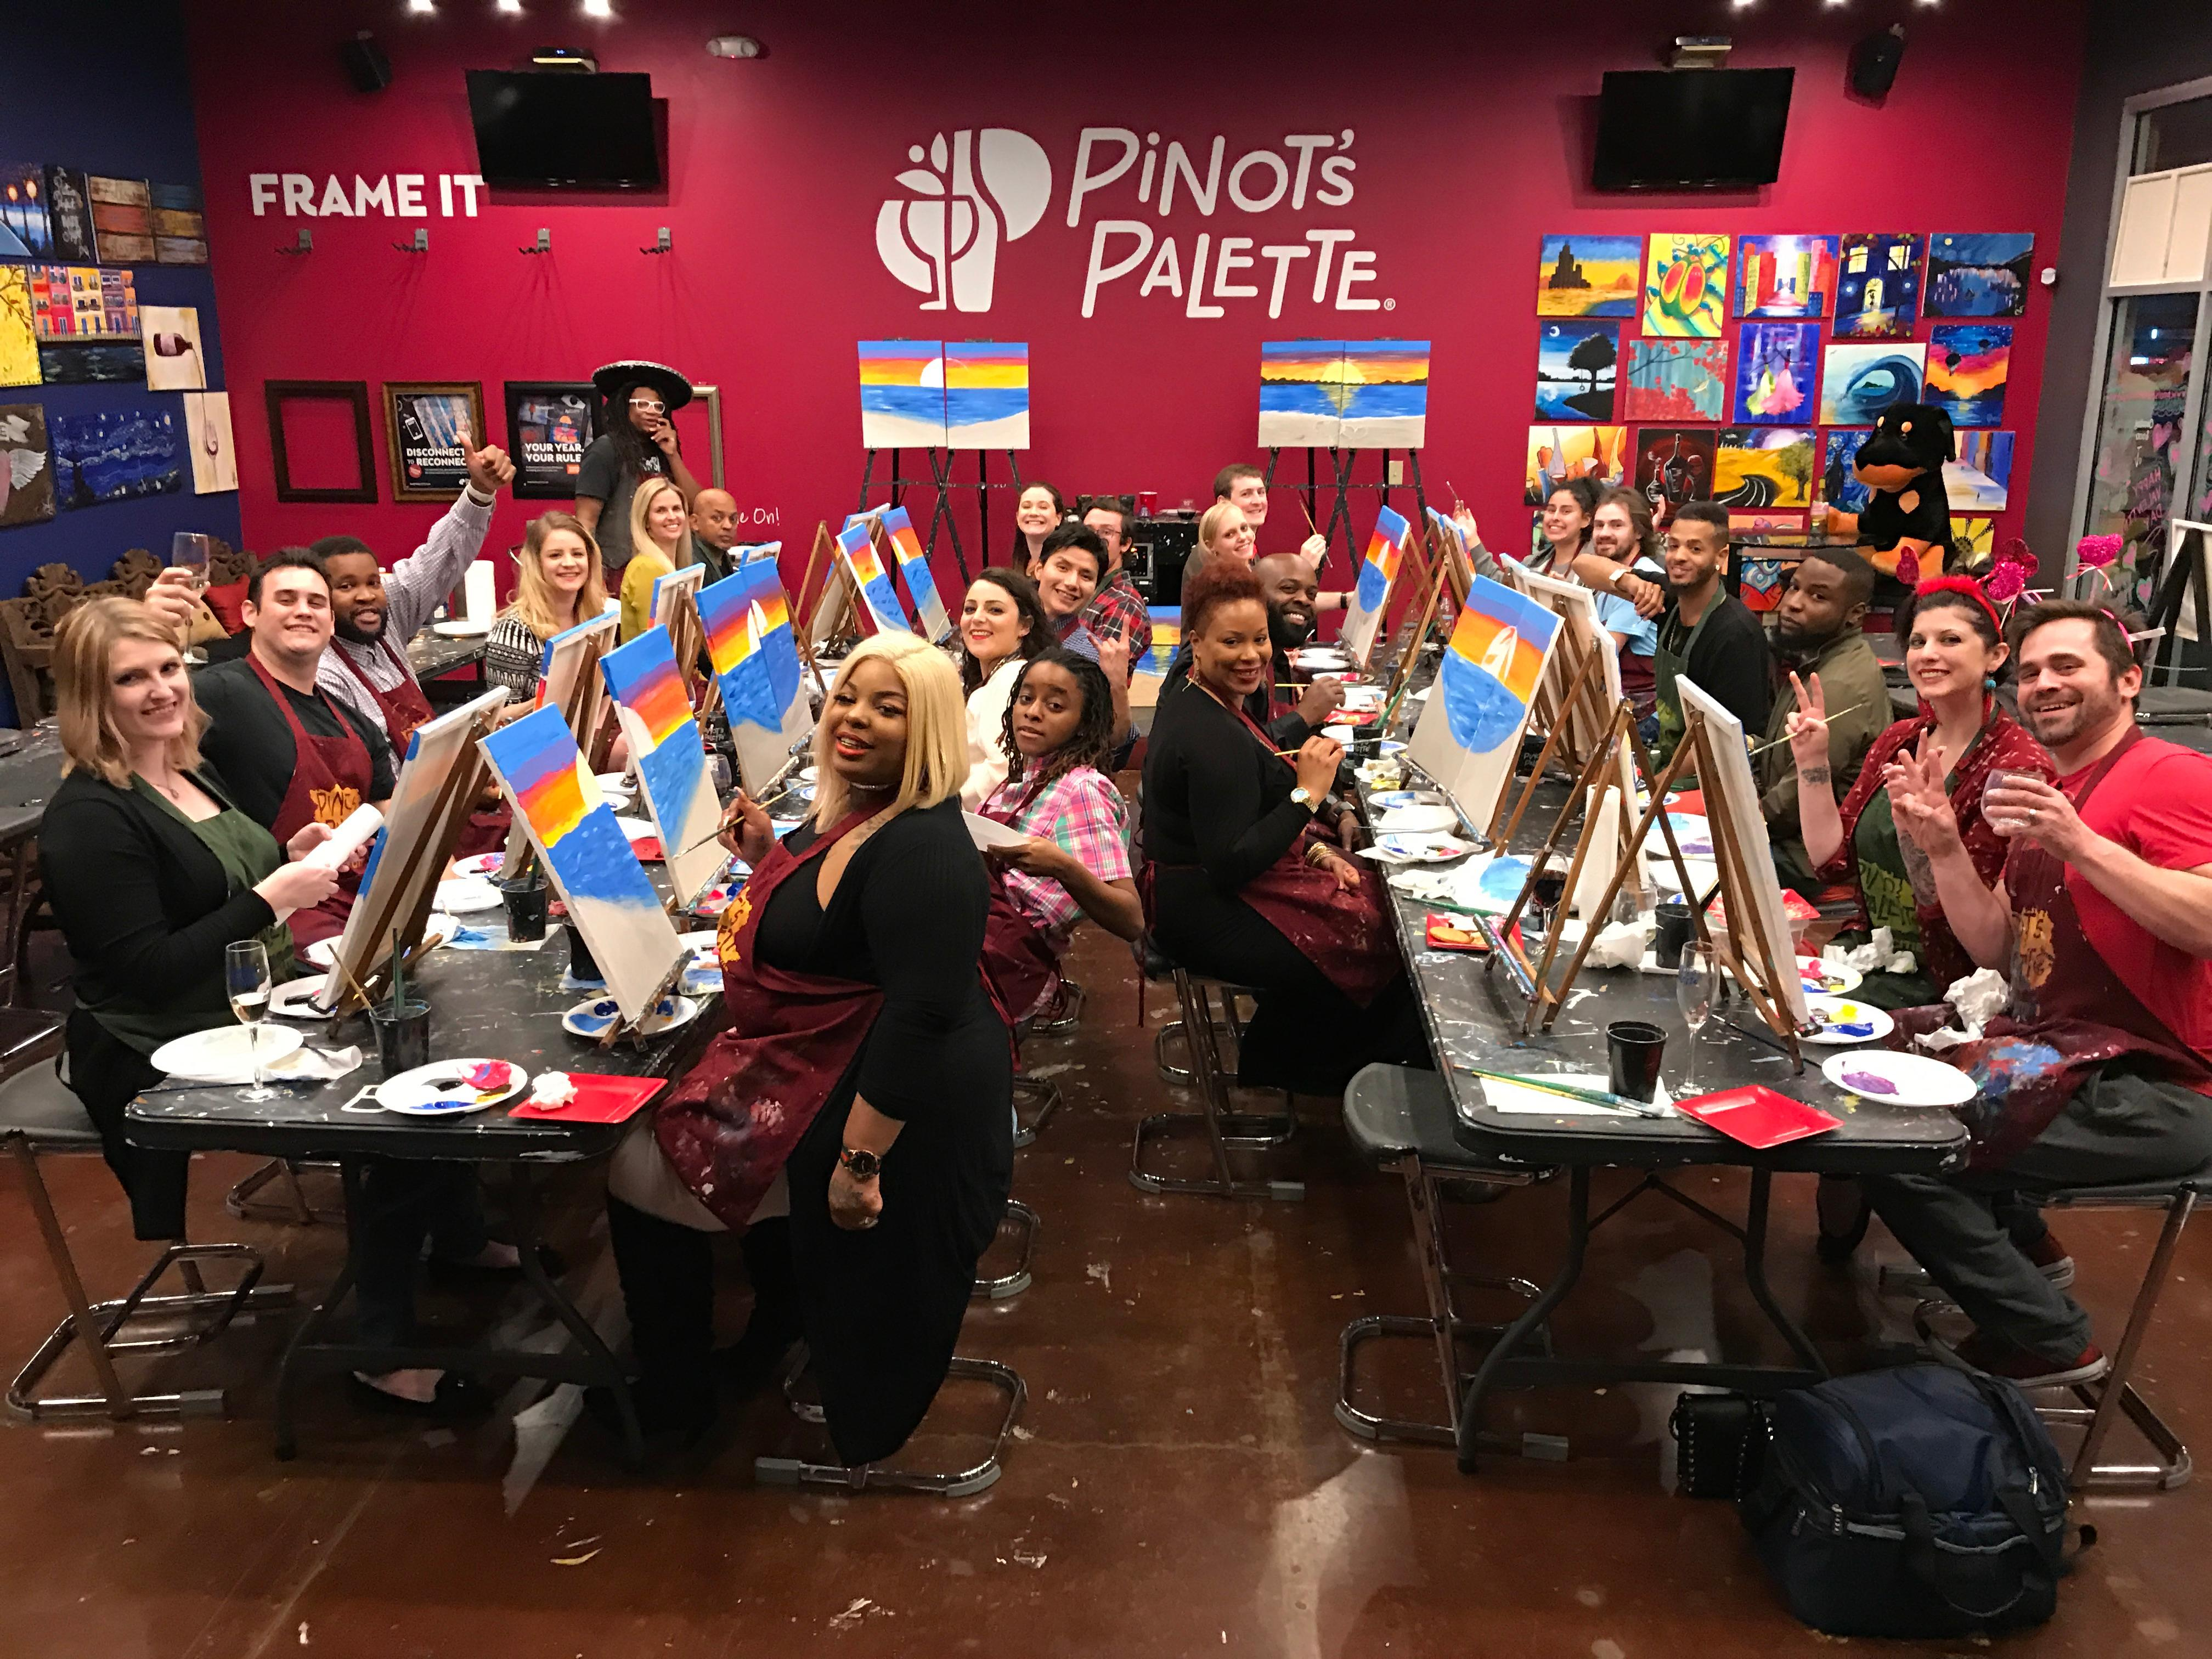 Pinot's Palette image 18